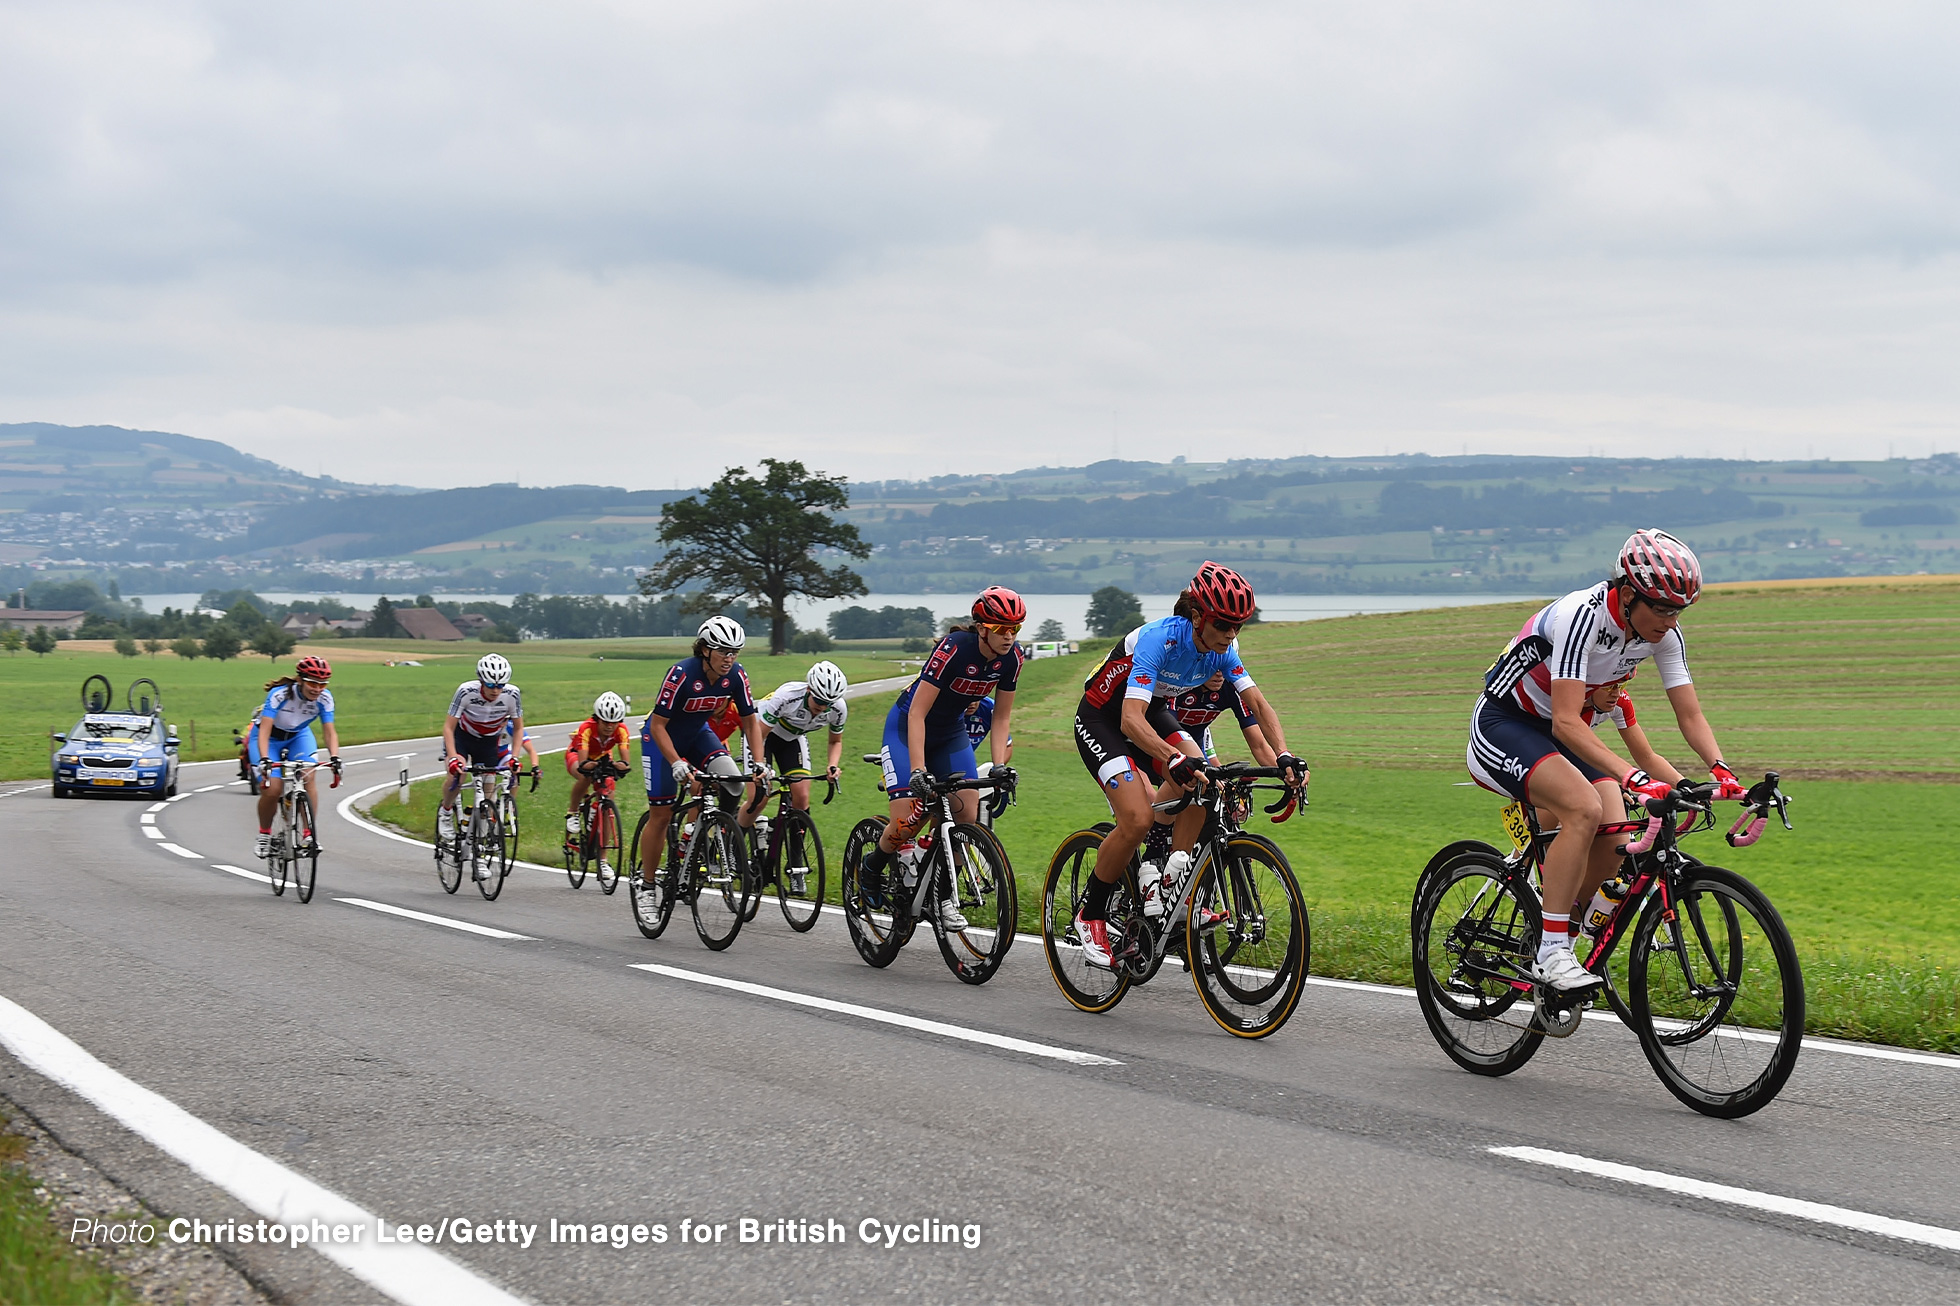 LUCERNE, SWITZERLAND - AUGUST 01: Dame Sarah Storey of Great Britain leads the pack before she breaks away to win the WC5 Road Race during the Road Race on Day 4 of the UCI Para-Cycling Road World Championship on August 1, 2015 in Lucerne, Switzerland. (Photo by Christopher Lee/Getty Images for British Cycling)